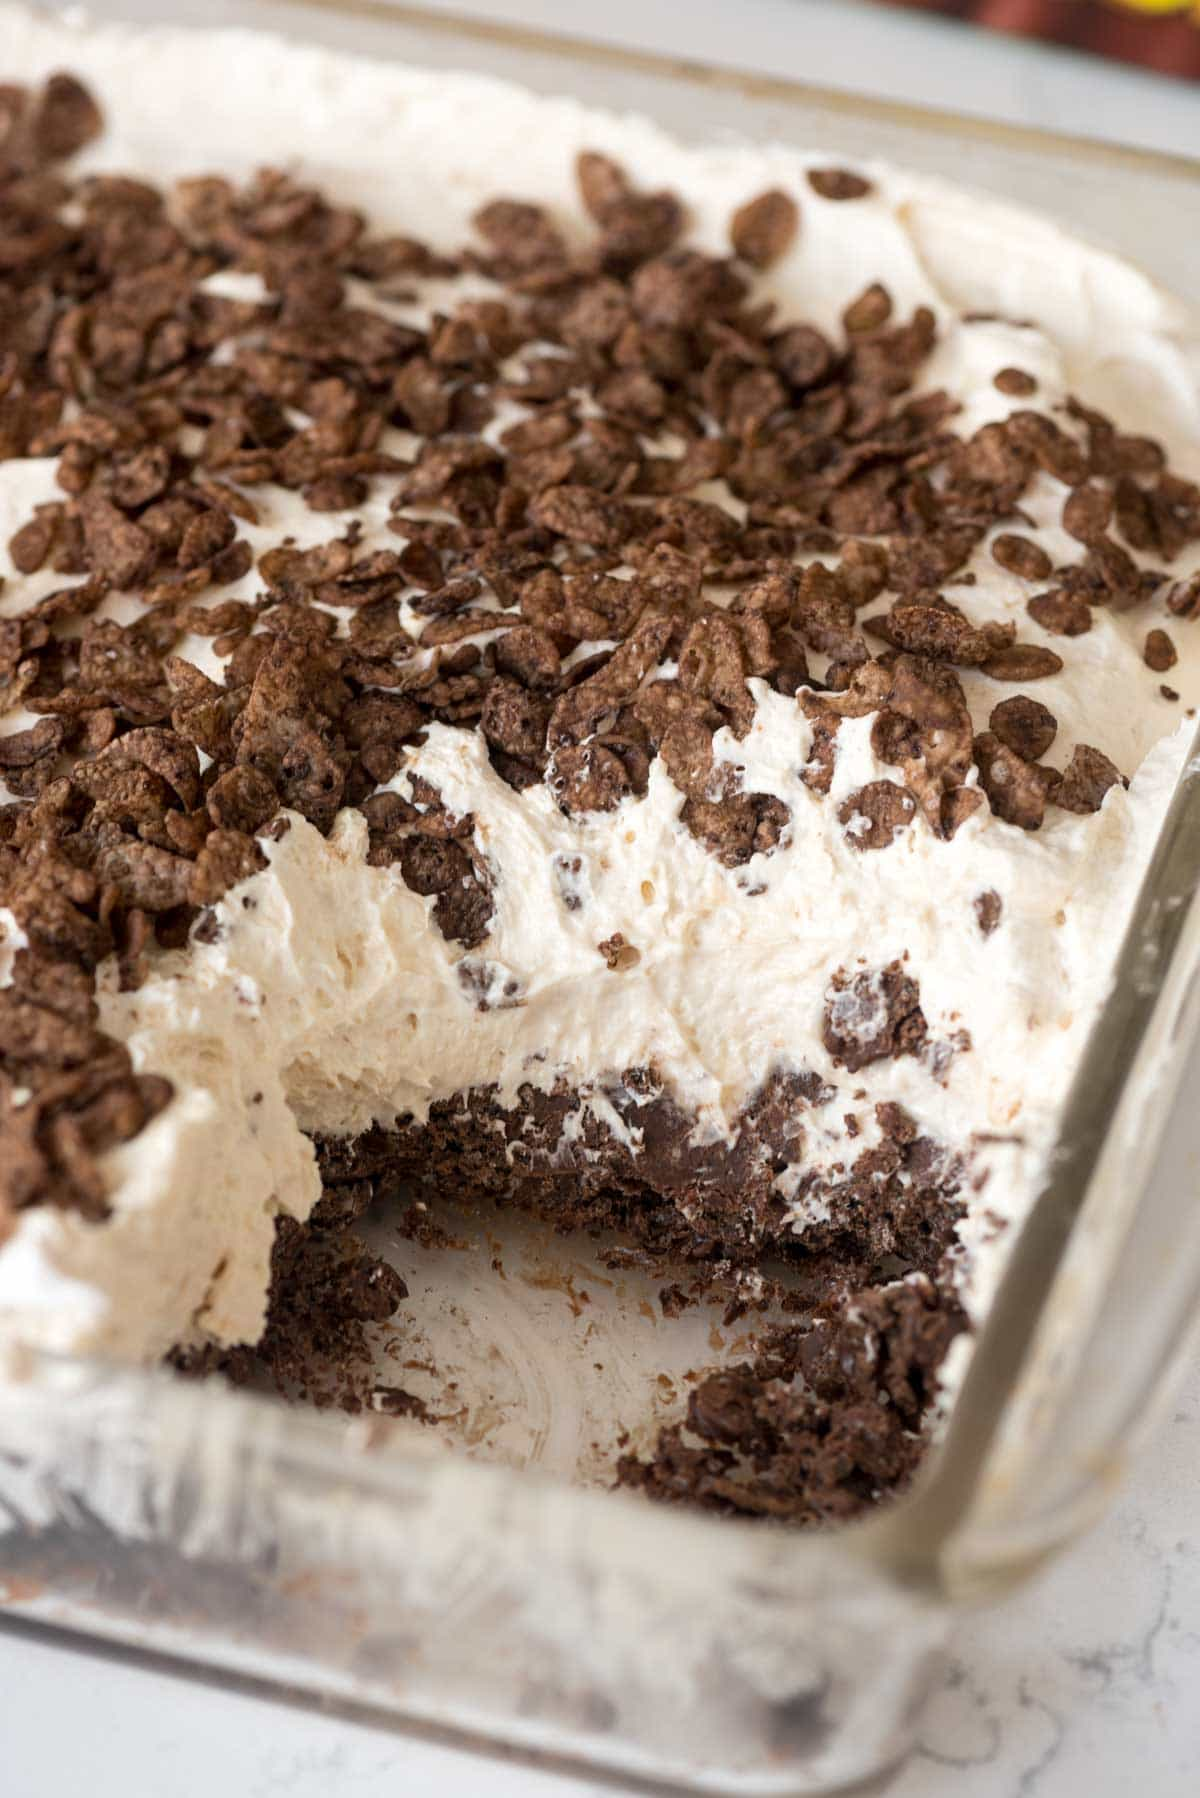 Easy Peanut Butter Cheesecake Cocoa Pebble No Bake Dessert